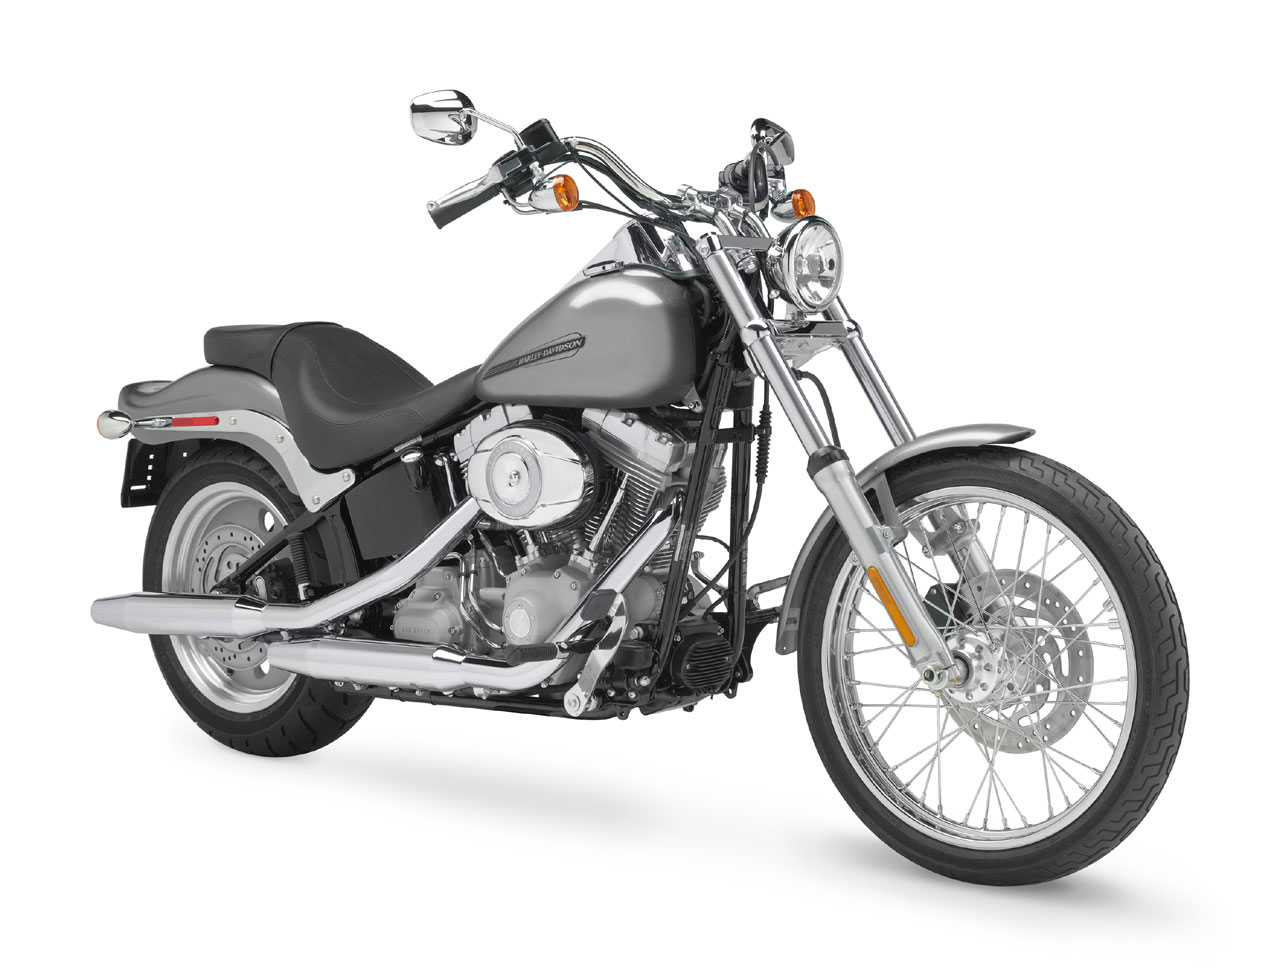 2001 Harley-Davidson FXST Softail Standard: pics, specs and ... on